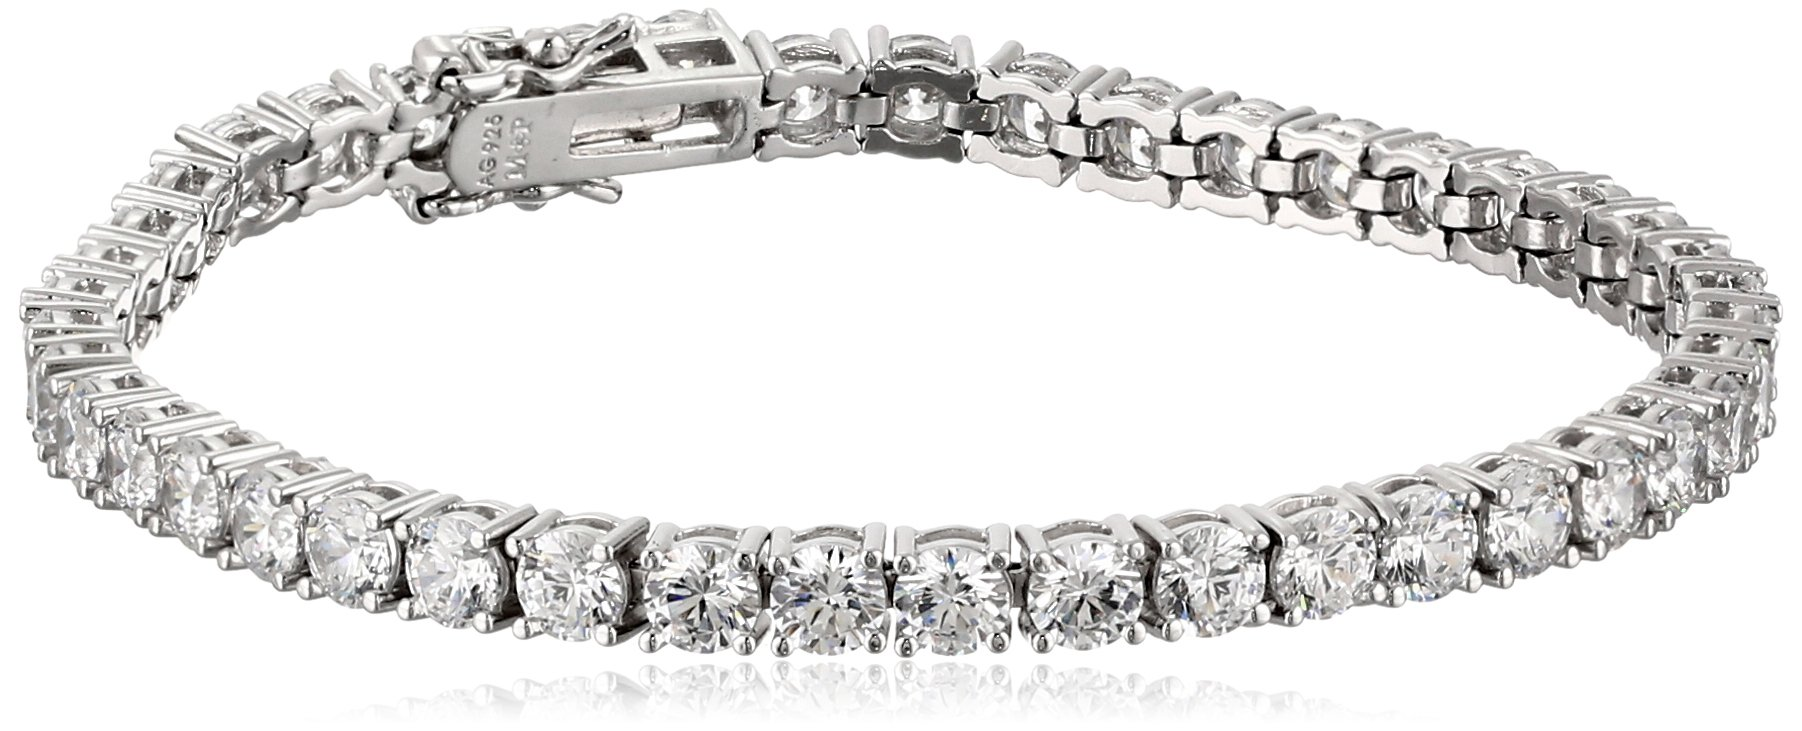 Amazon Collection Platinum Plated Sterling Silver Tennis Bracelet set with Round Cut Swarovski Zirconia (16.77 cttw), 7.25''